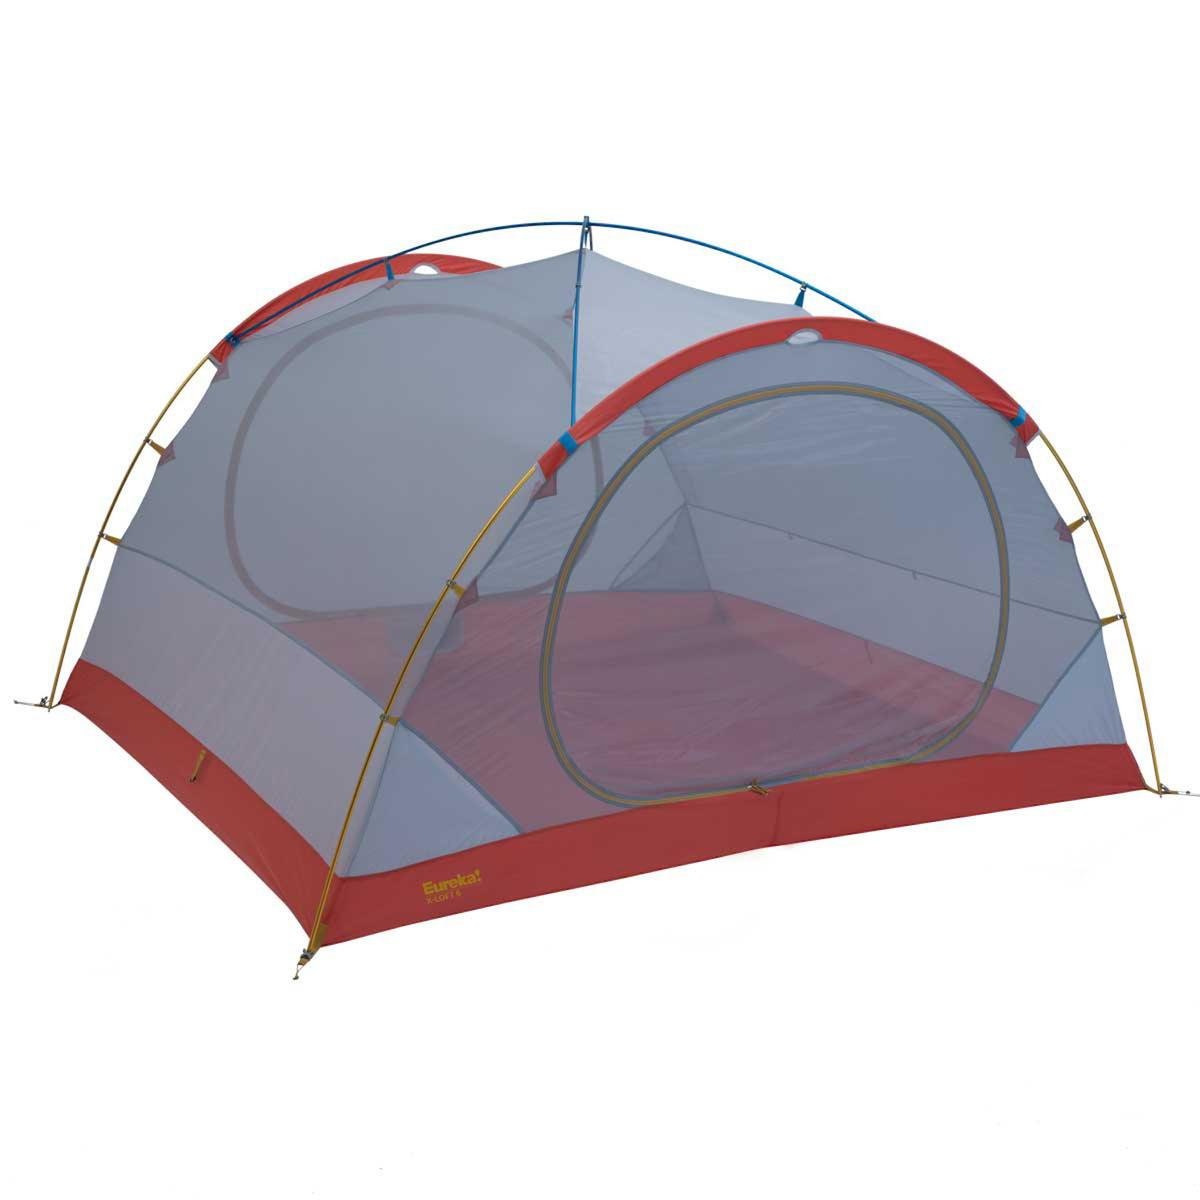 Eureka X-Loft 4 Person Tent